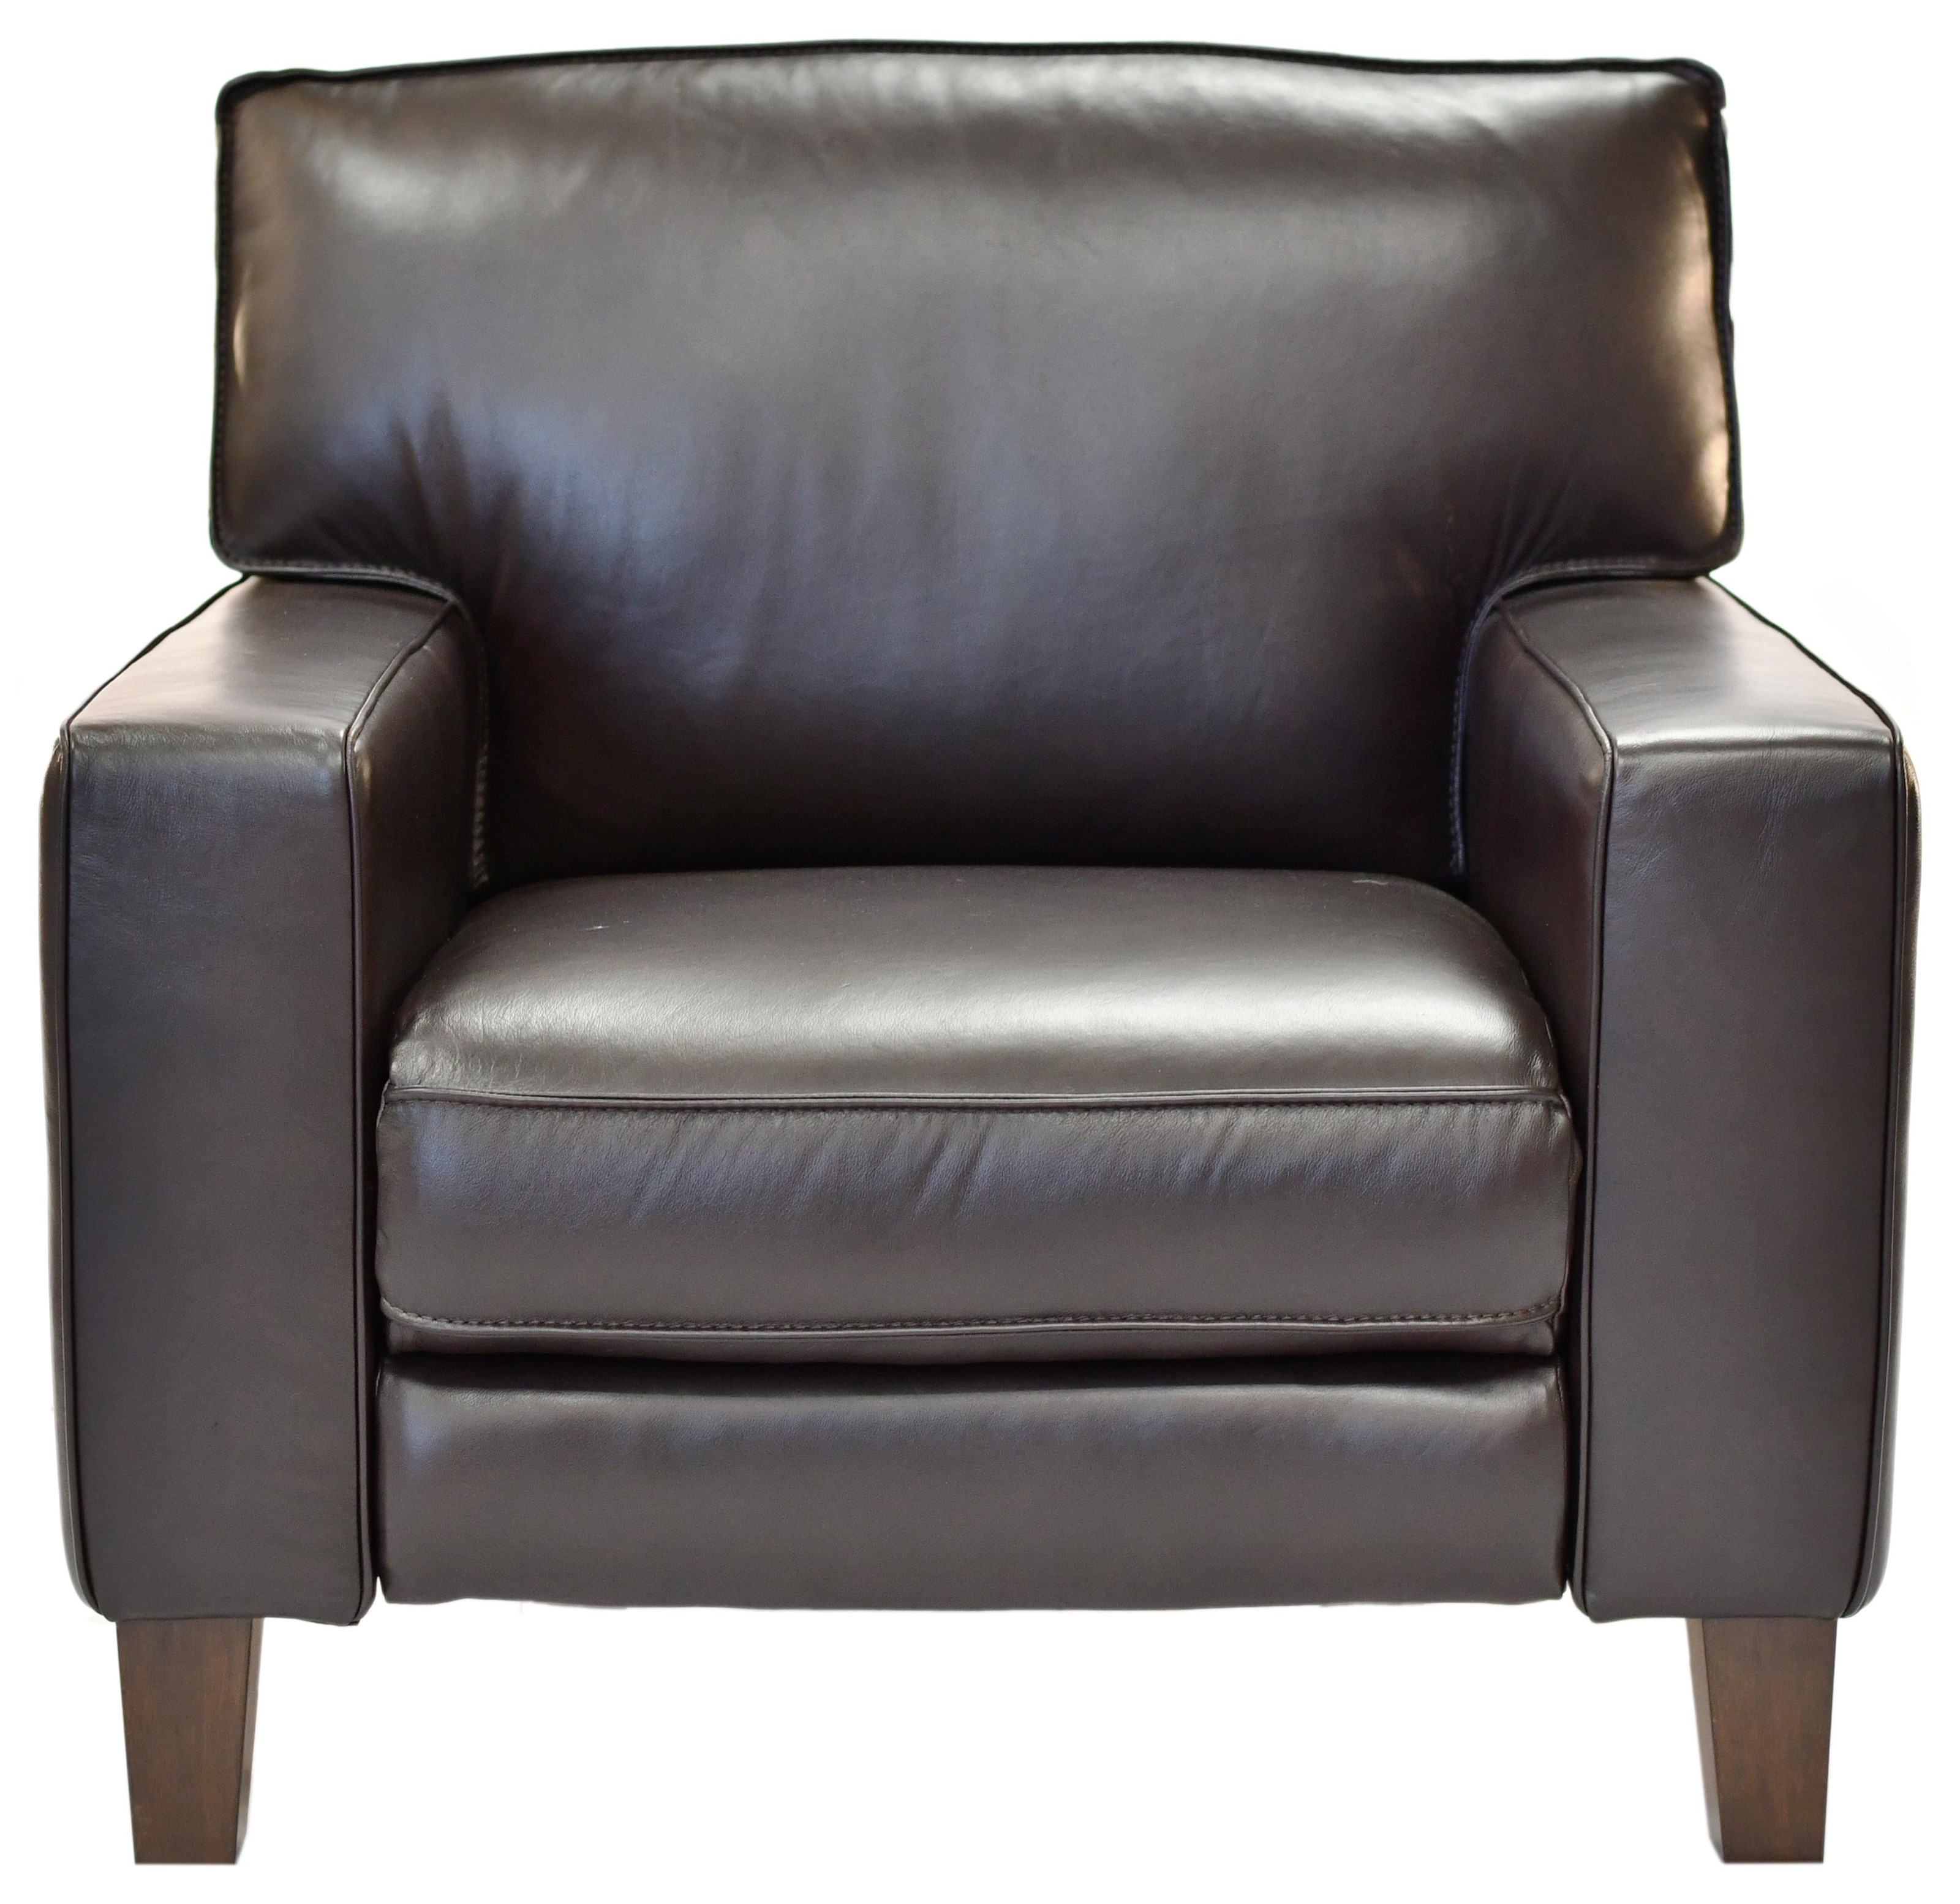 32644EC Power Leather Reclining Chair at Bennett's Furniture and Mattresses